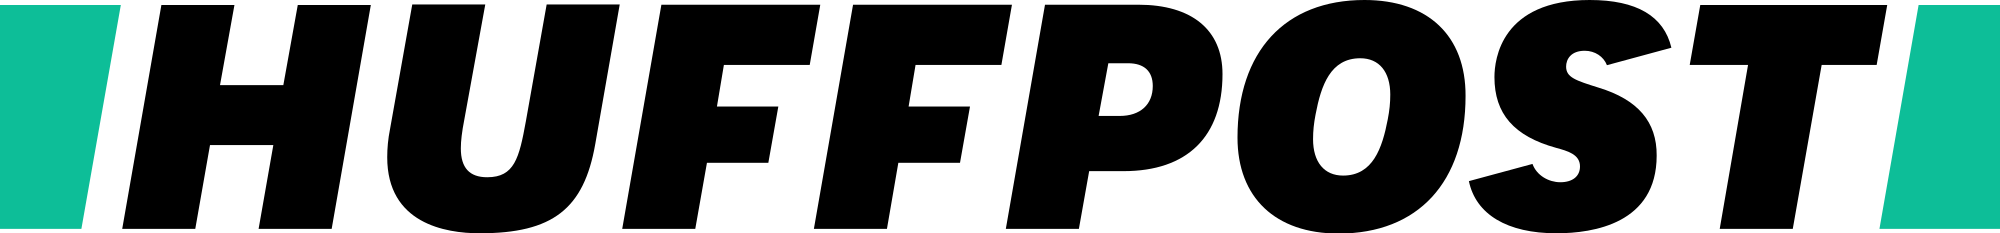 HuffPost-Logo-PNG.png